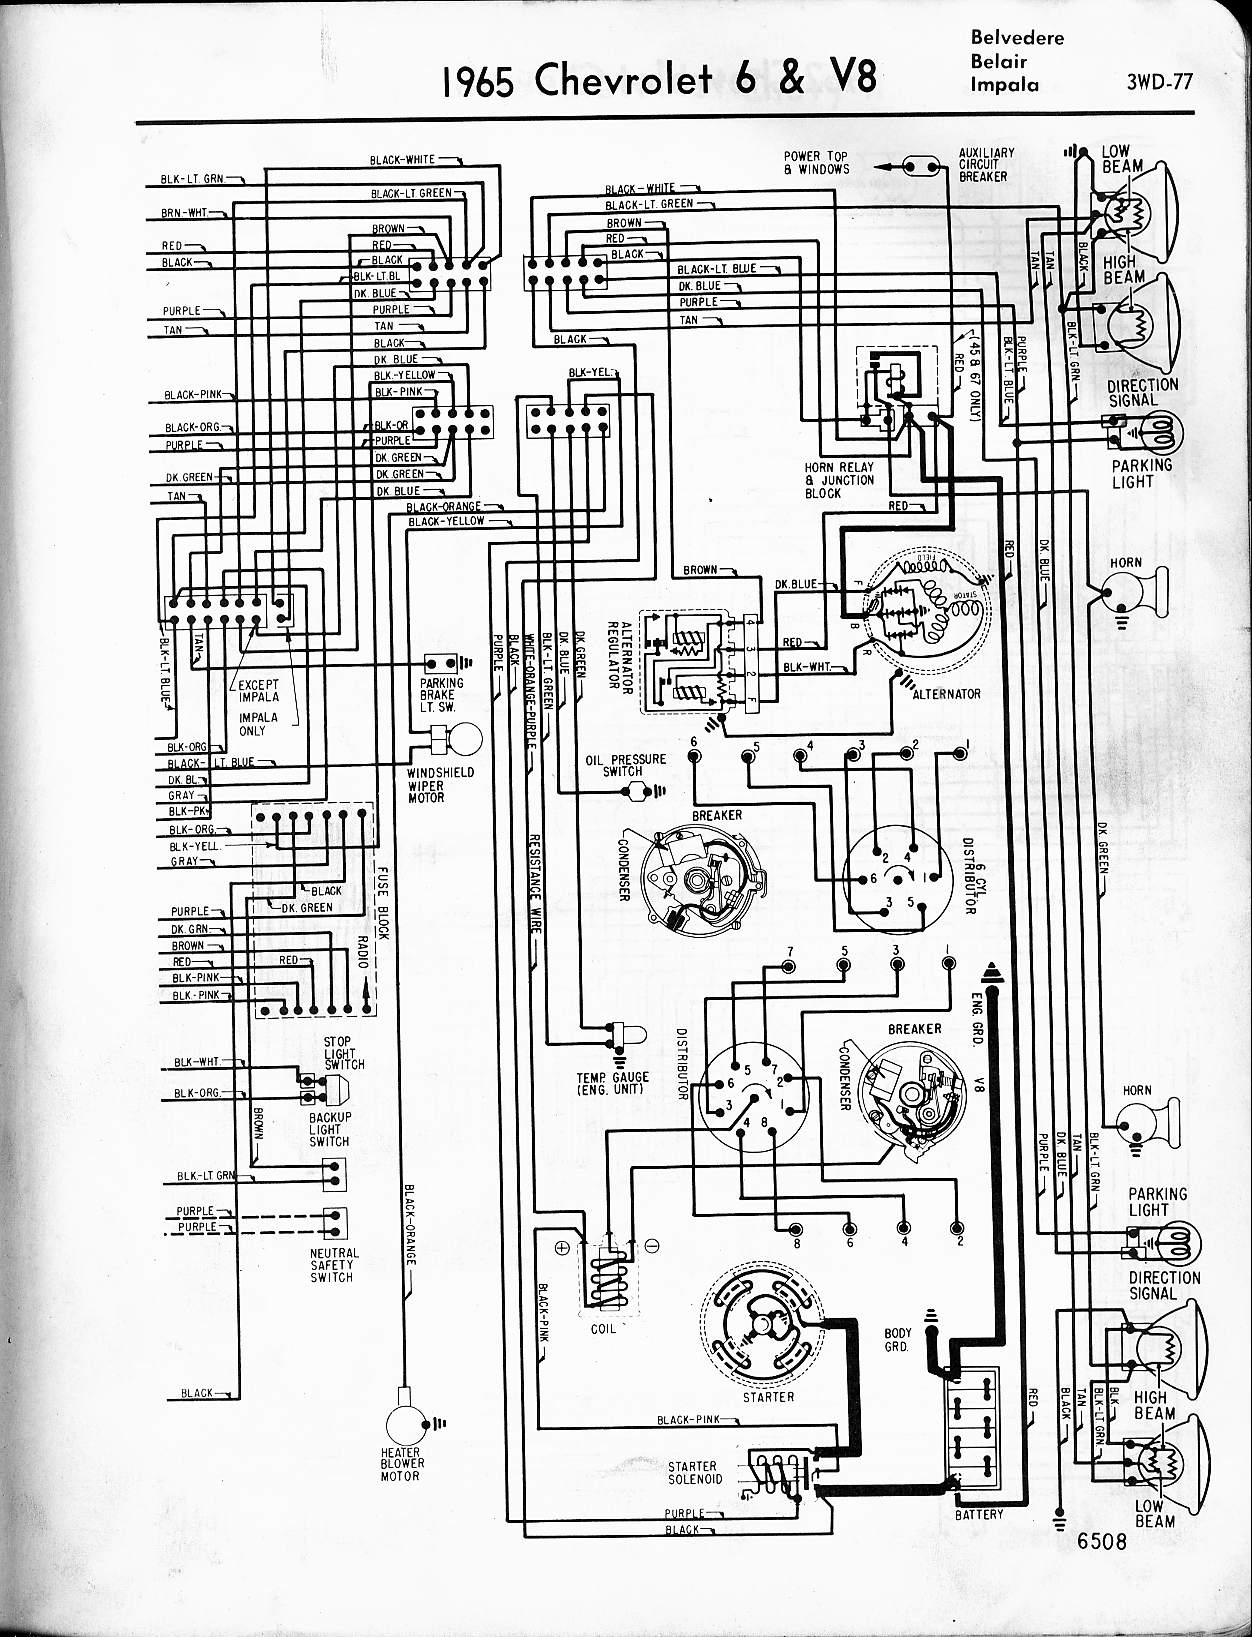 1995 Impala Ss Wiring Diagram - Wiring Diagram Bookmark on